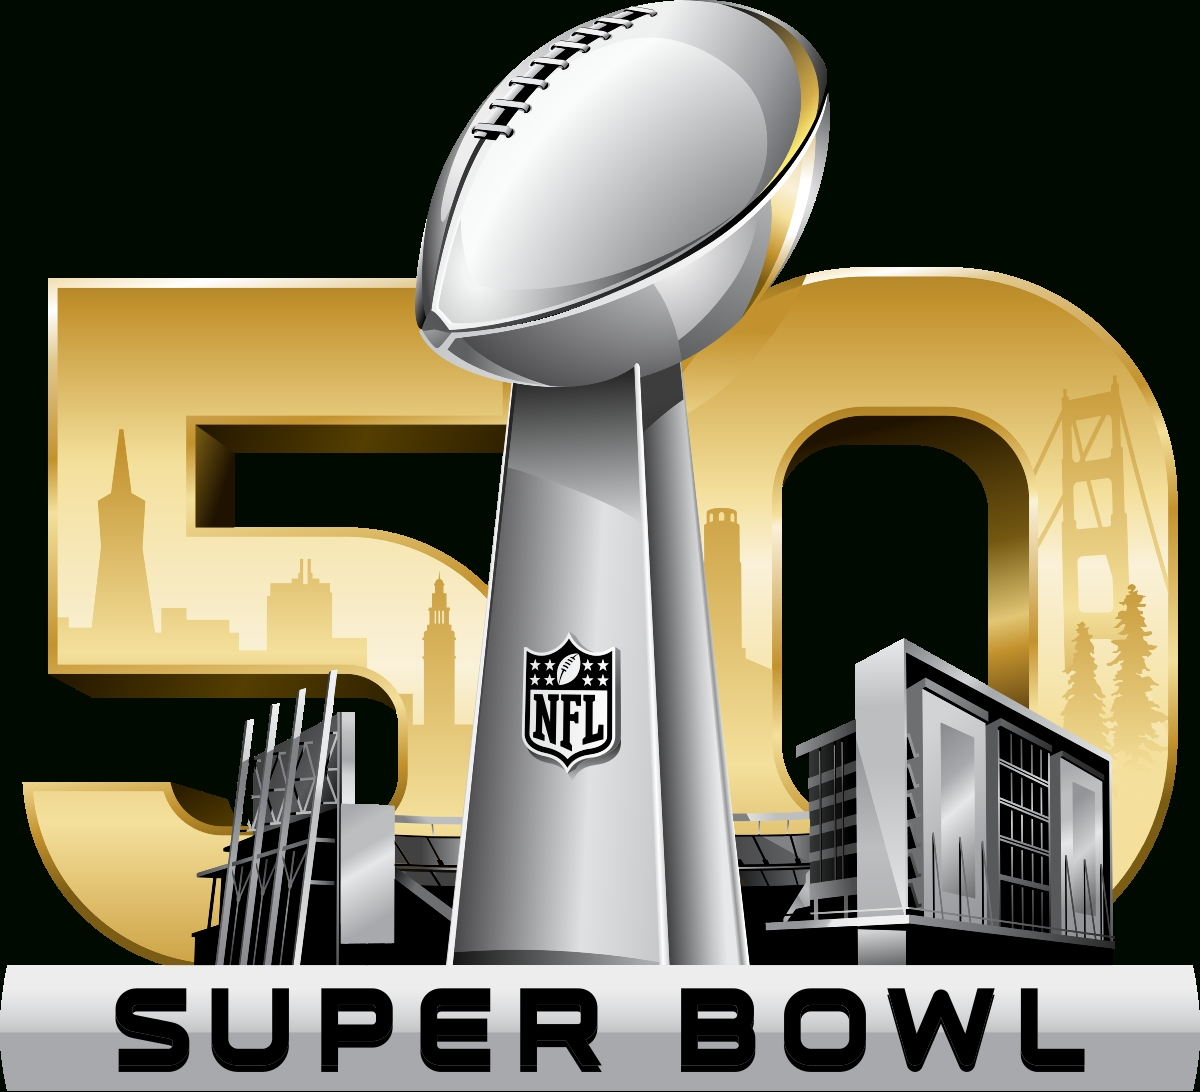 Super Bowl 50 - Wikipedia for Broncos Super Bowl 50